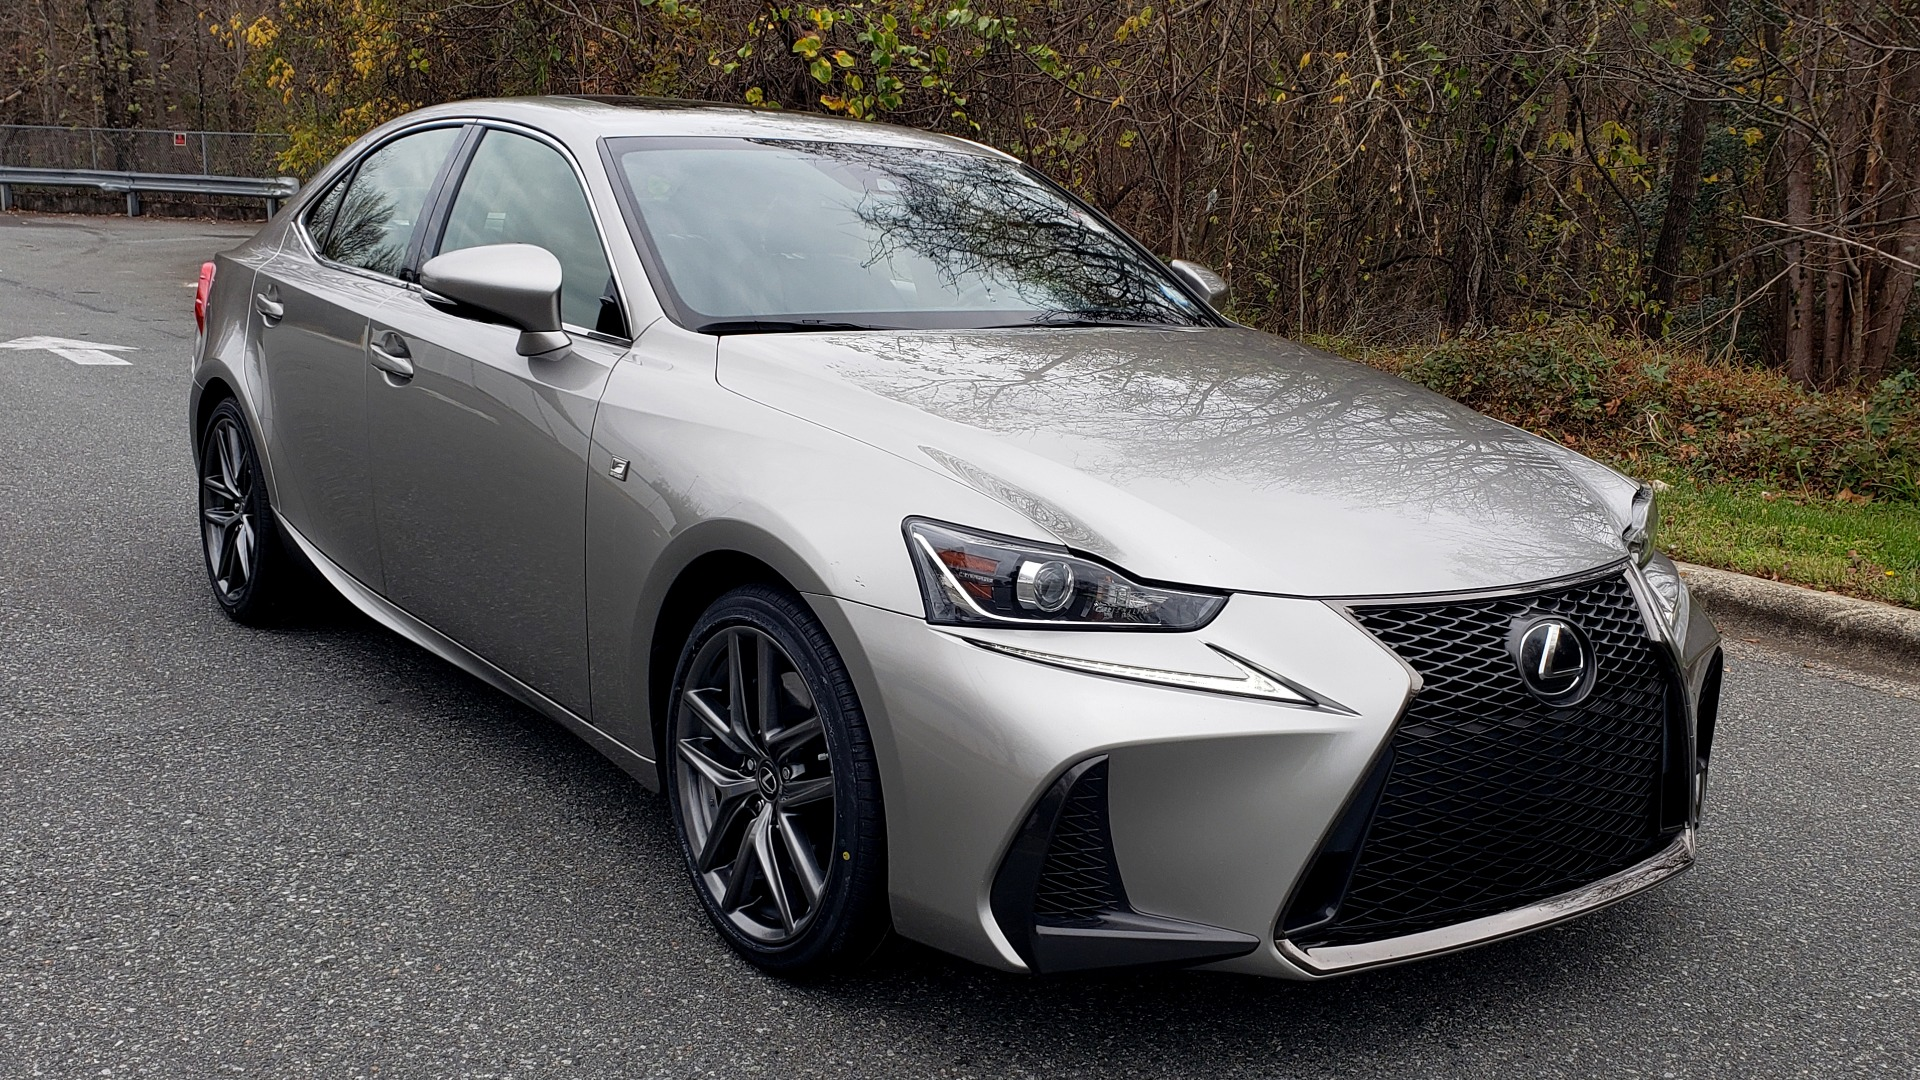 Used 2017 Lexus IS 200 TURBO F-SPORT / BSM / SUNROOF / VENT SEATS / REARVIEW for sale Sold at Formula Imports in Charlotte NC 28227 11